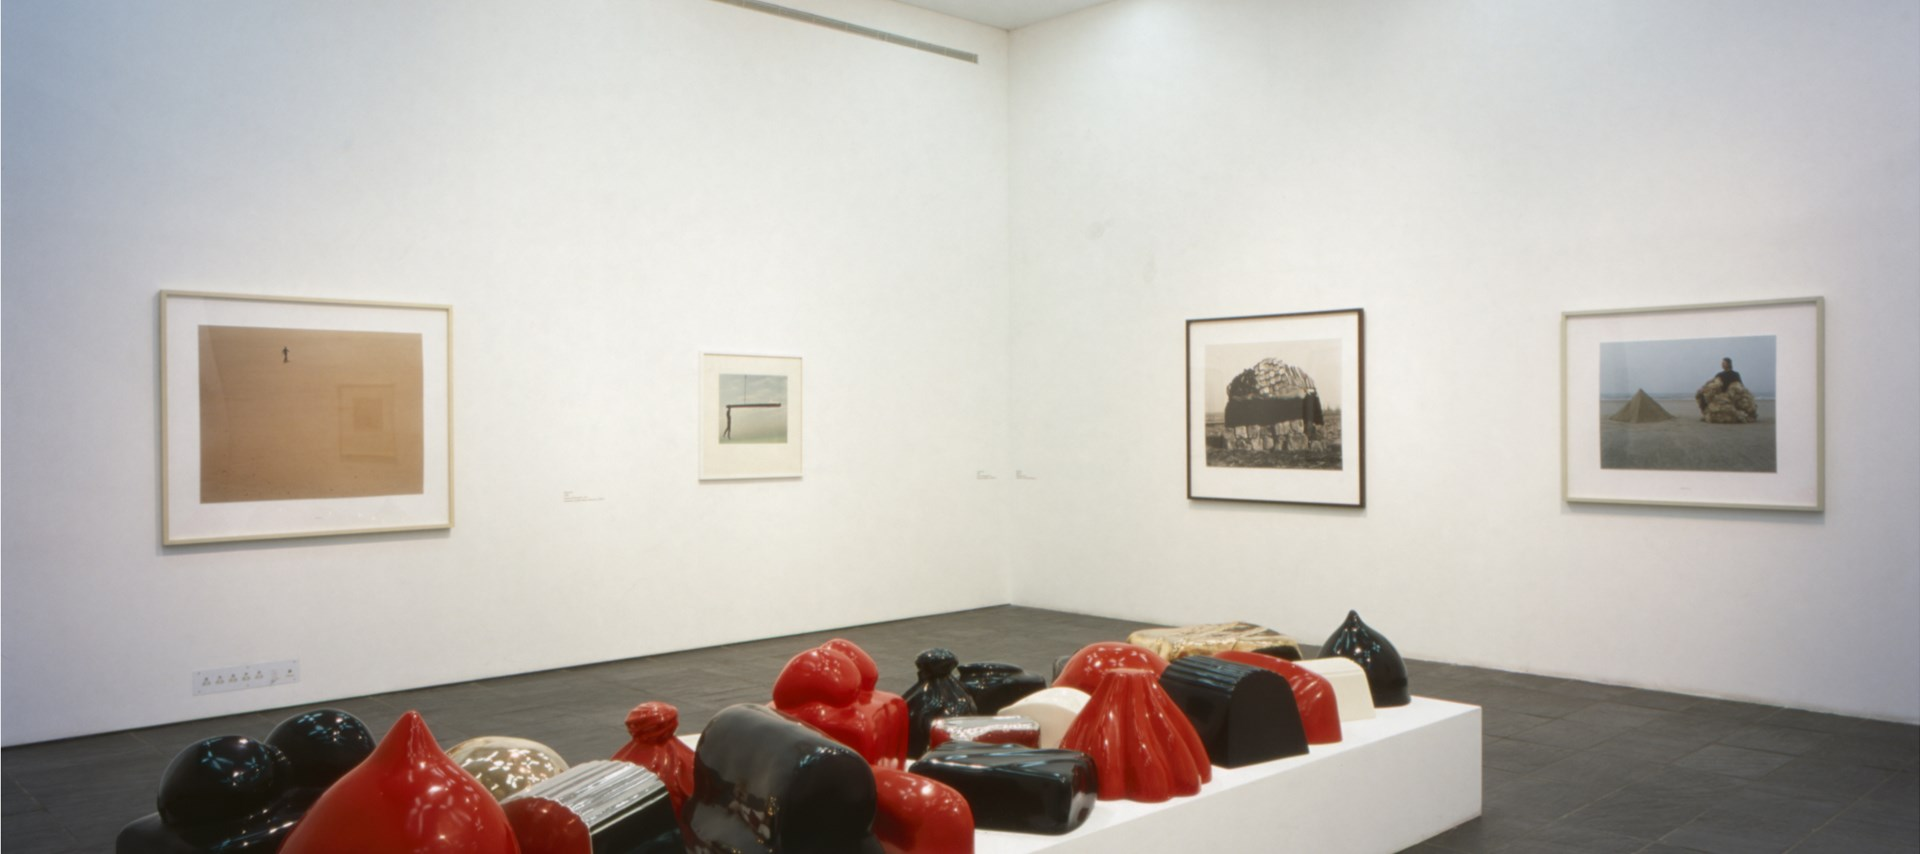 Sigurdur Gudmundsson: Situations: Installation view, image: Colin Davison © BALTIC